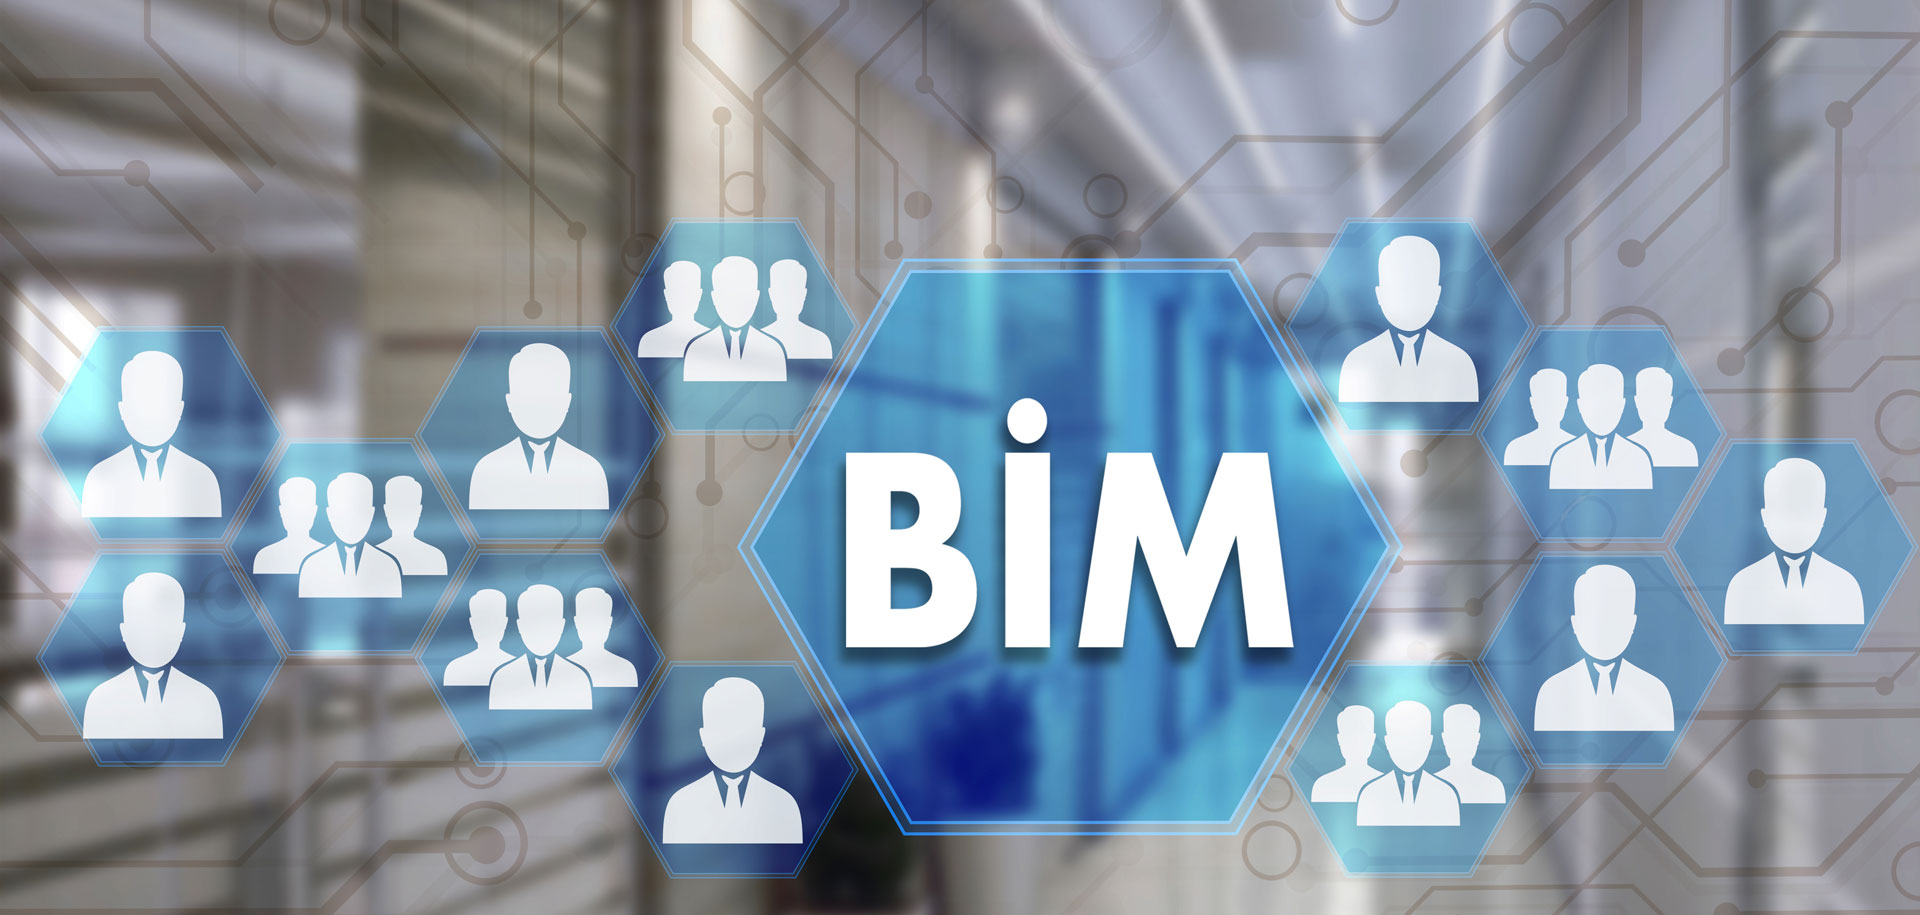 building information modelling (BIM) header with blue icons of people